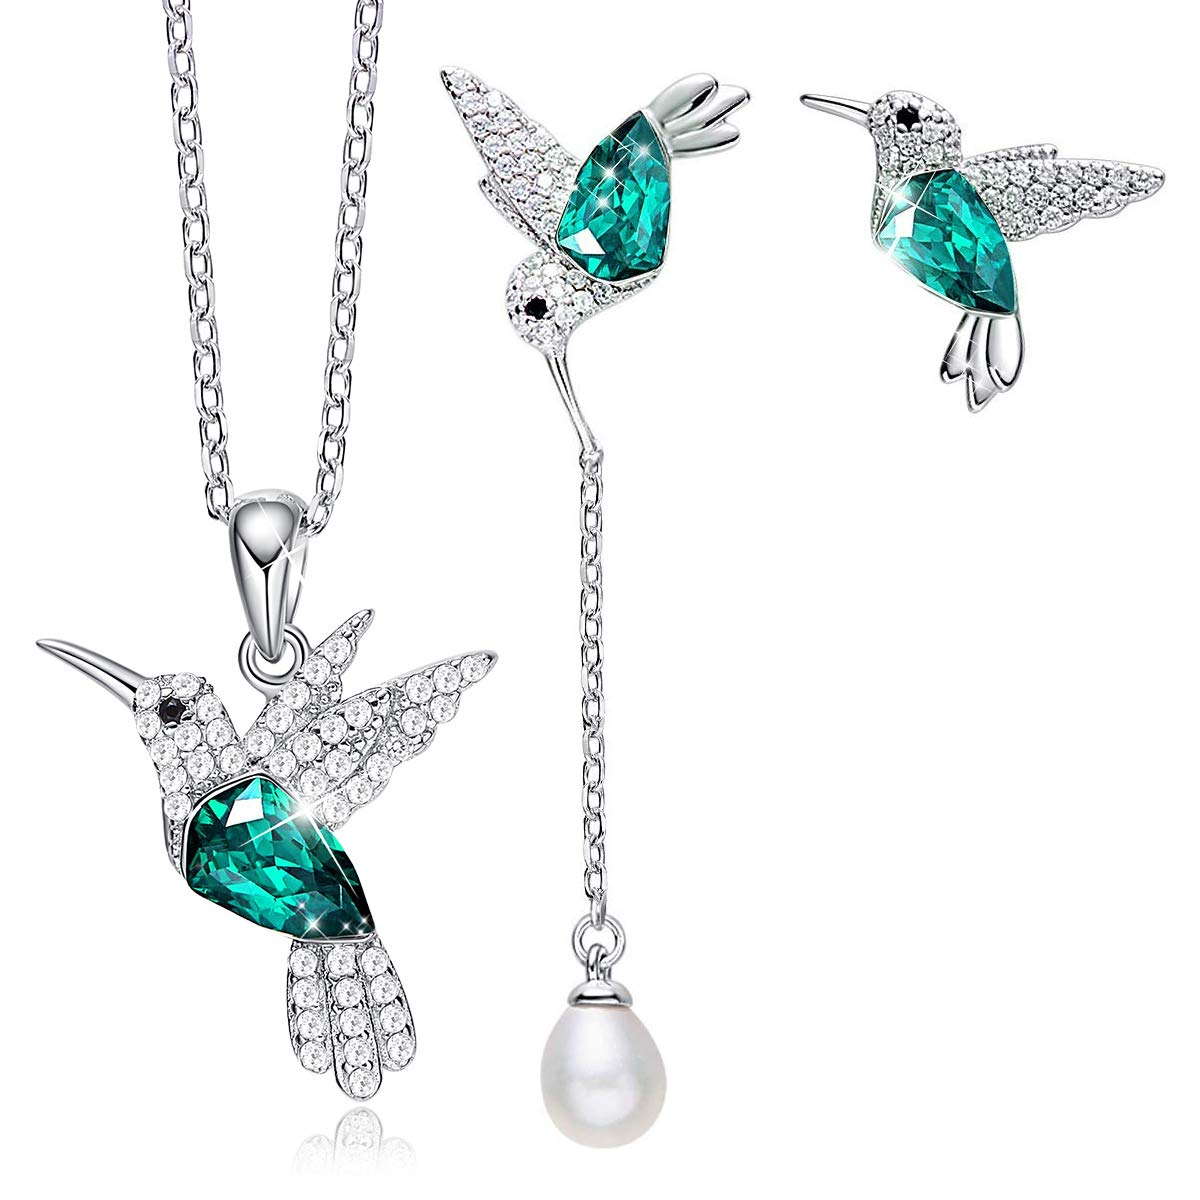 CDE S925 Sterling Silver Jewelry Set Hummingbird Pendant Necklace Pearl Earrings Sets Embellished with Crystals from Swarovski Fine Jewelry Gifts for Women